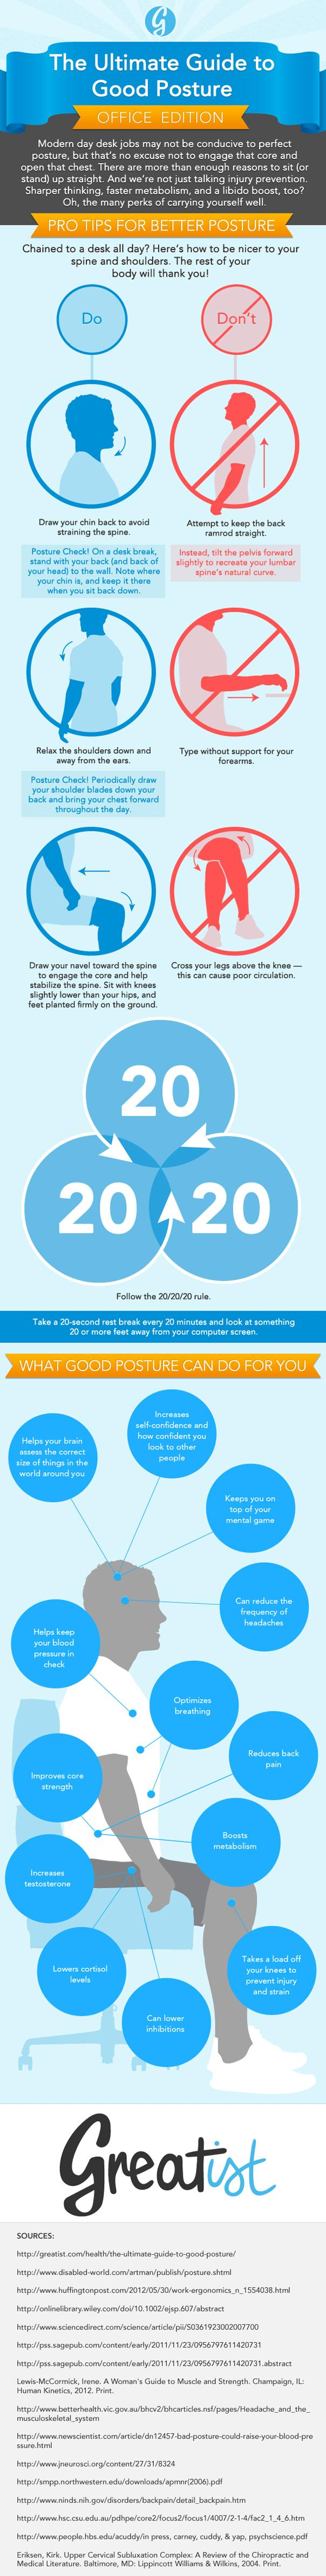 Posture-at-Work-Infographic1